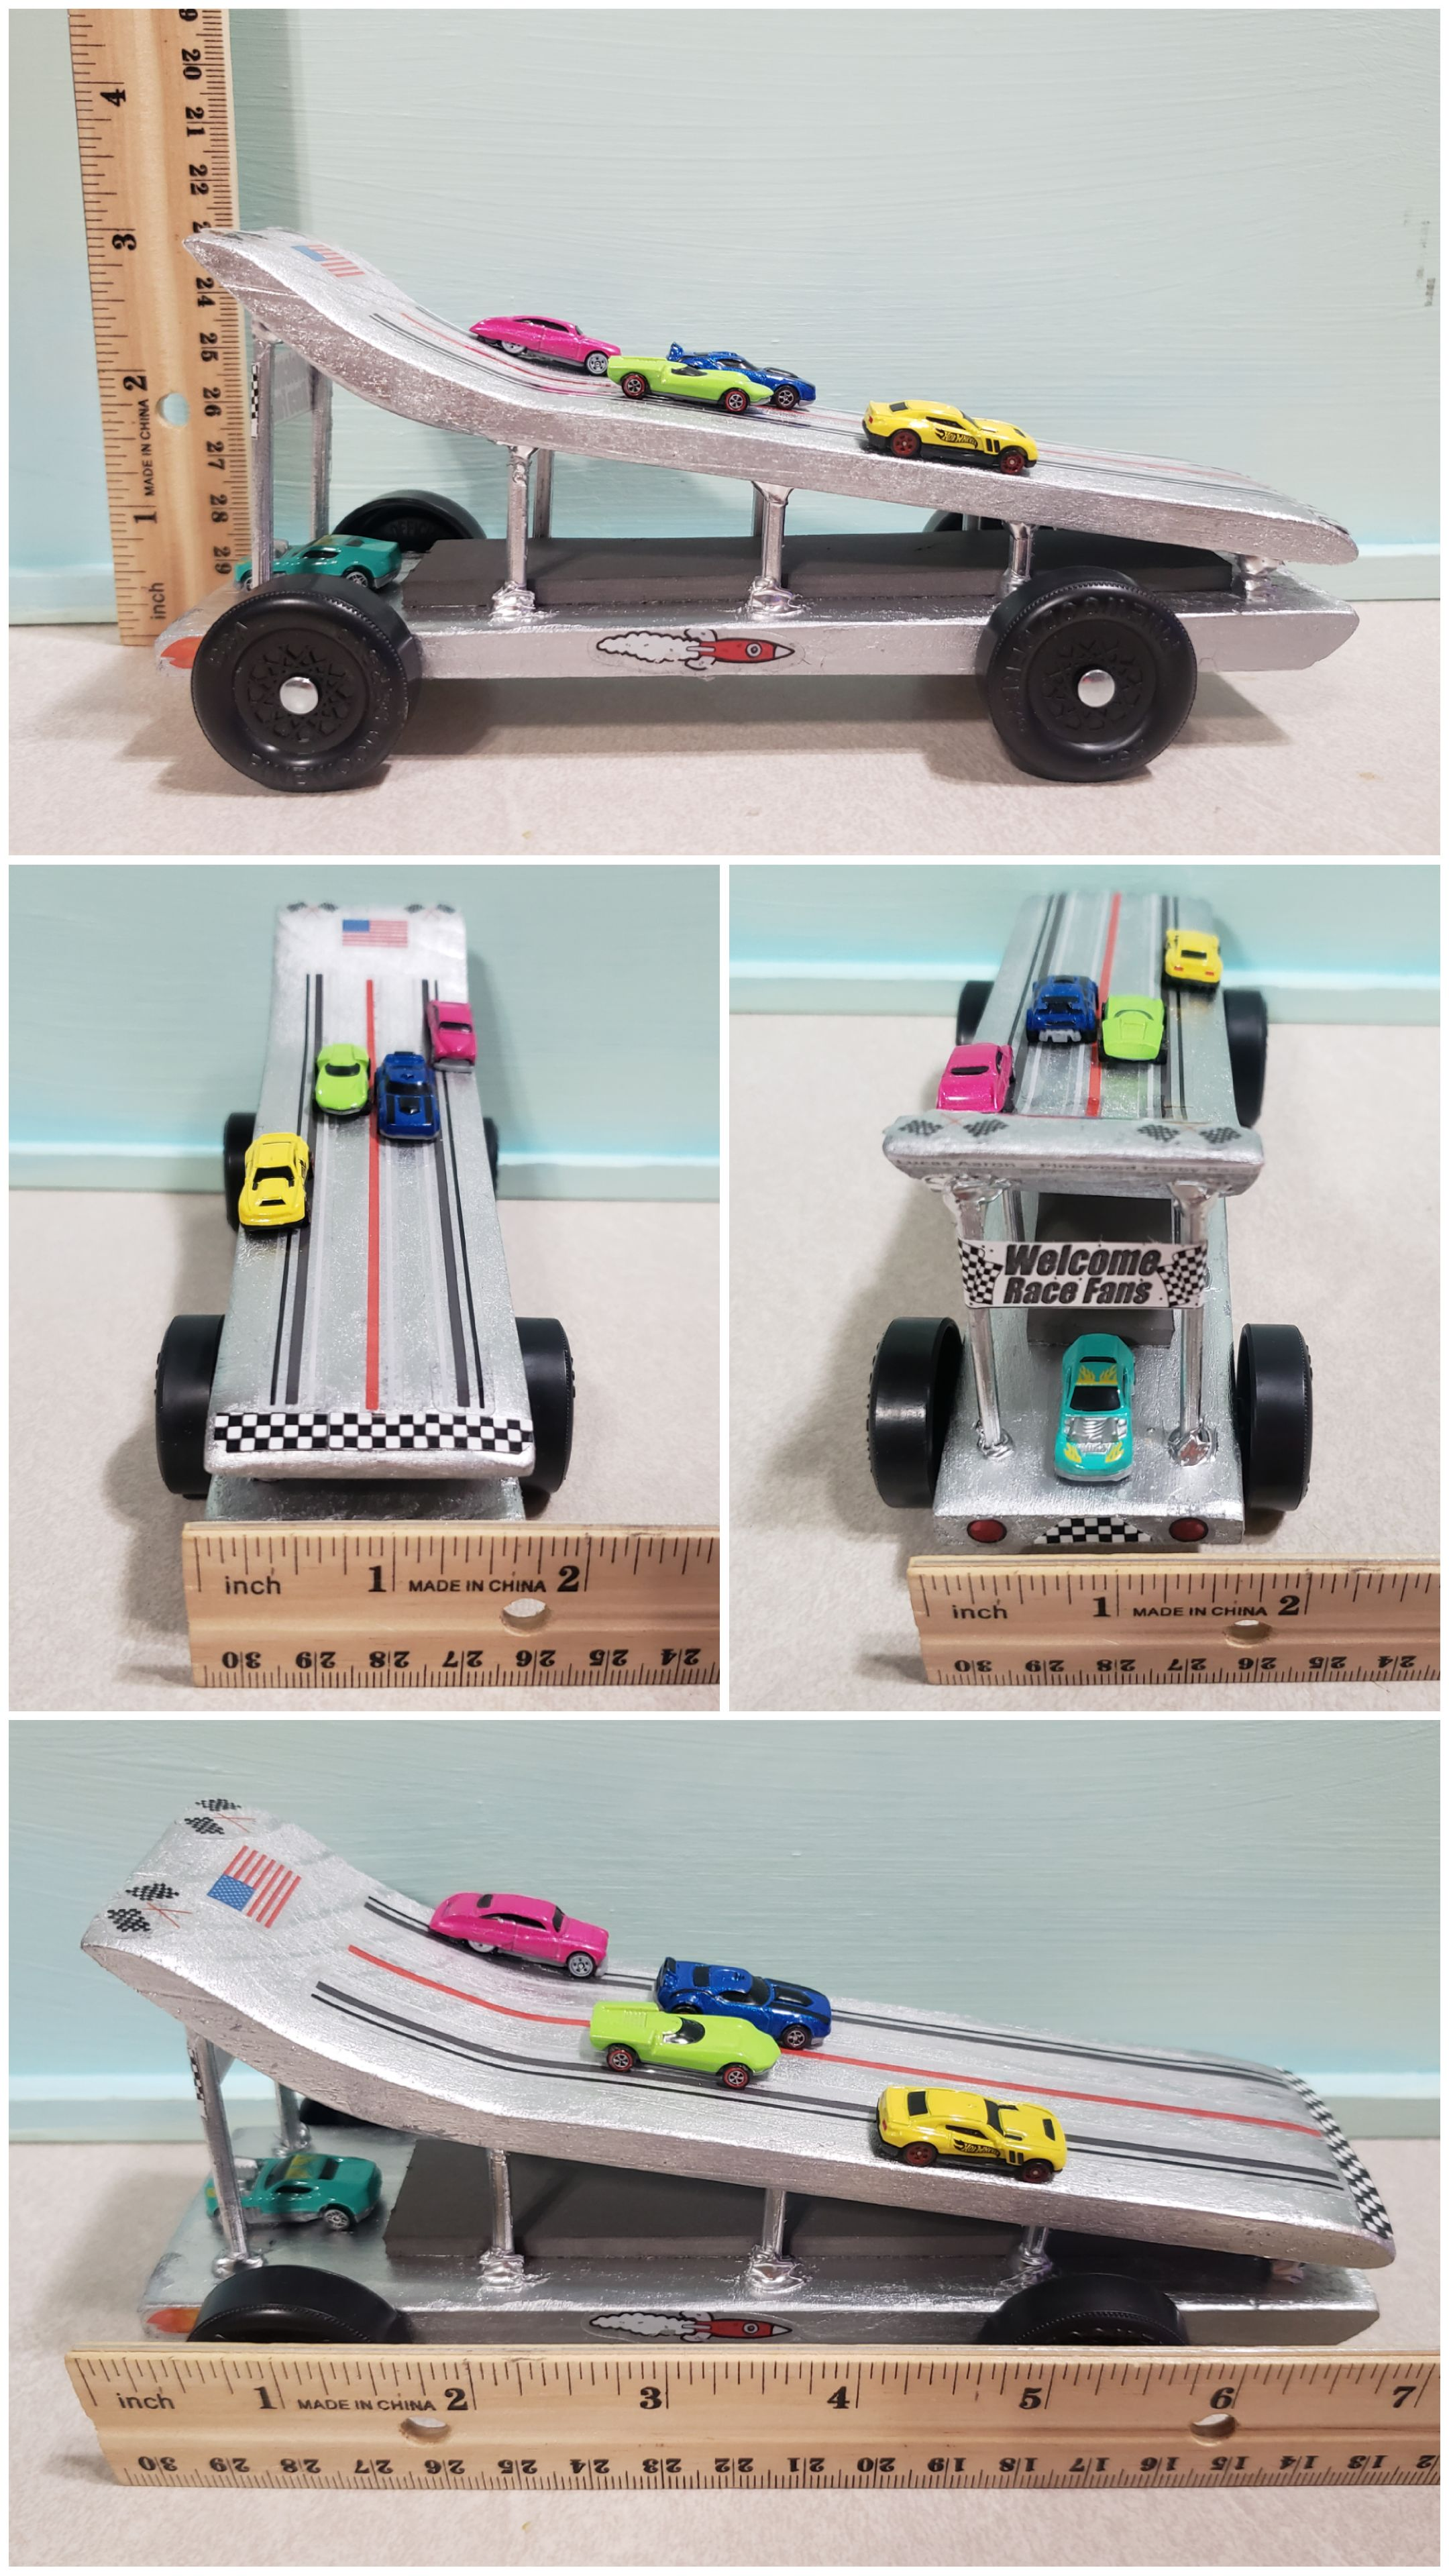 The Pinewood Derby Racer